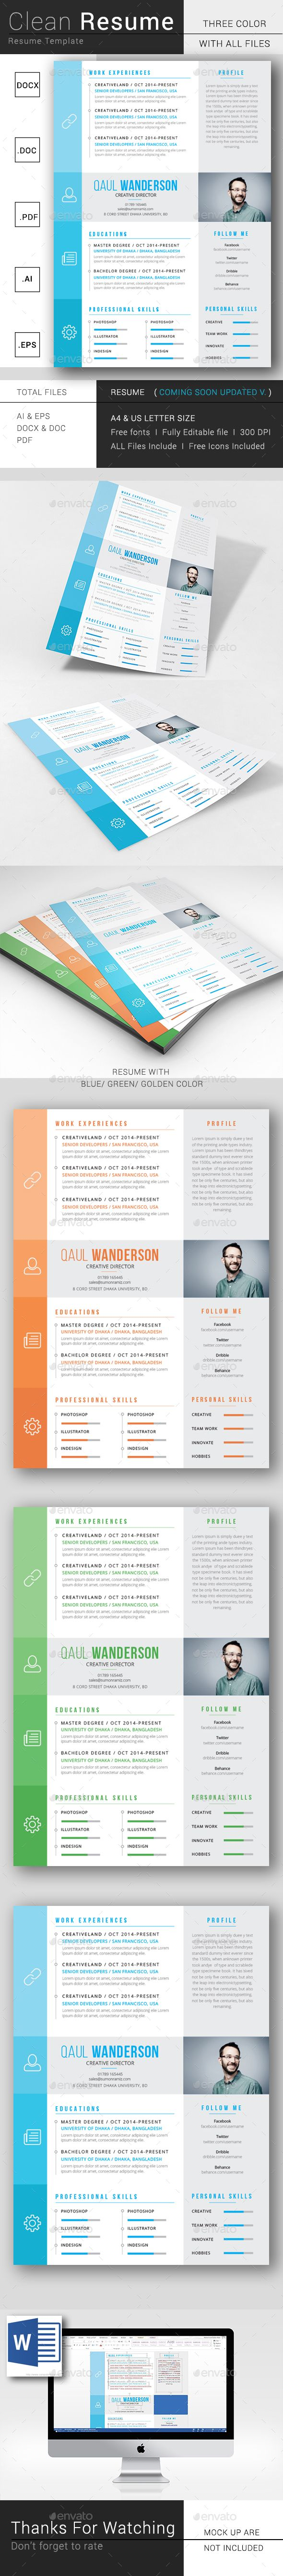 Best Kickresume Templates Gallery Resume Samples Resume